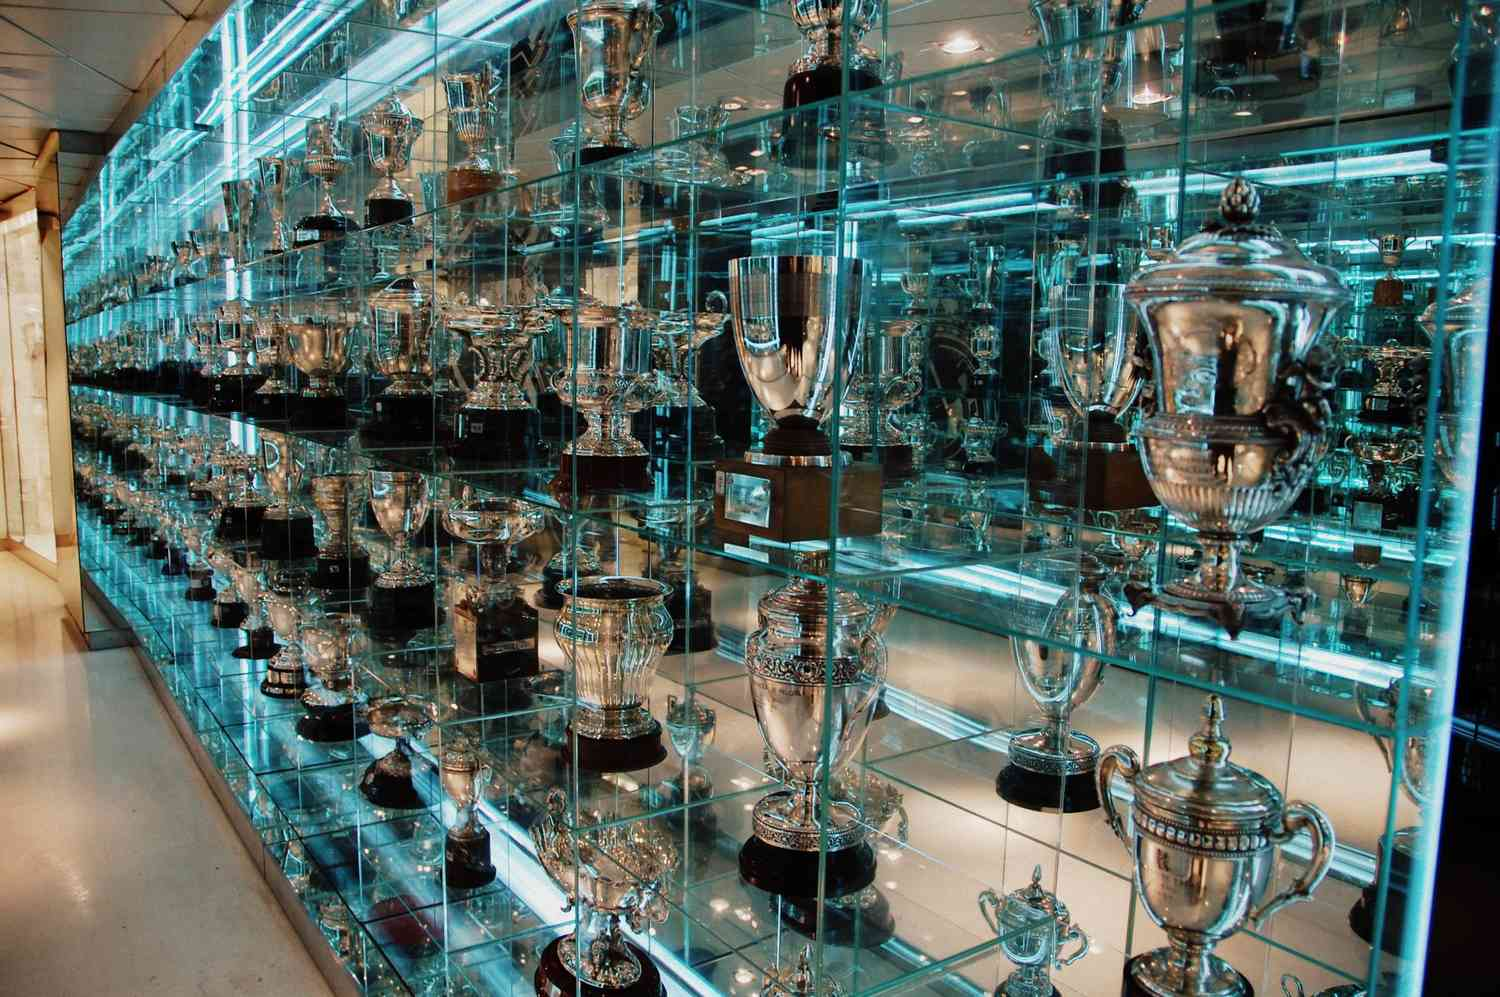 Trophy room at Santiago Bernabeu Stadium, home of the Real Madrid soccer club.